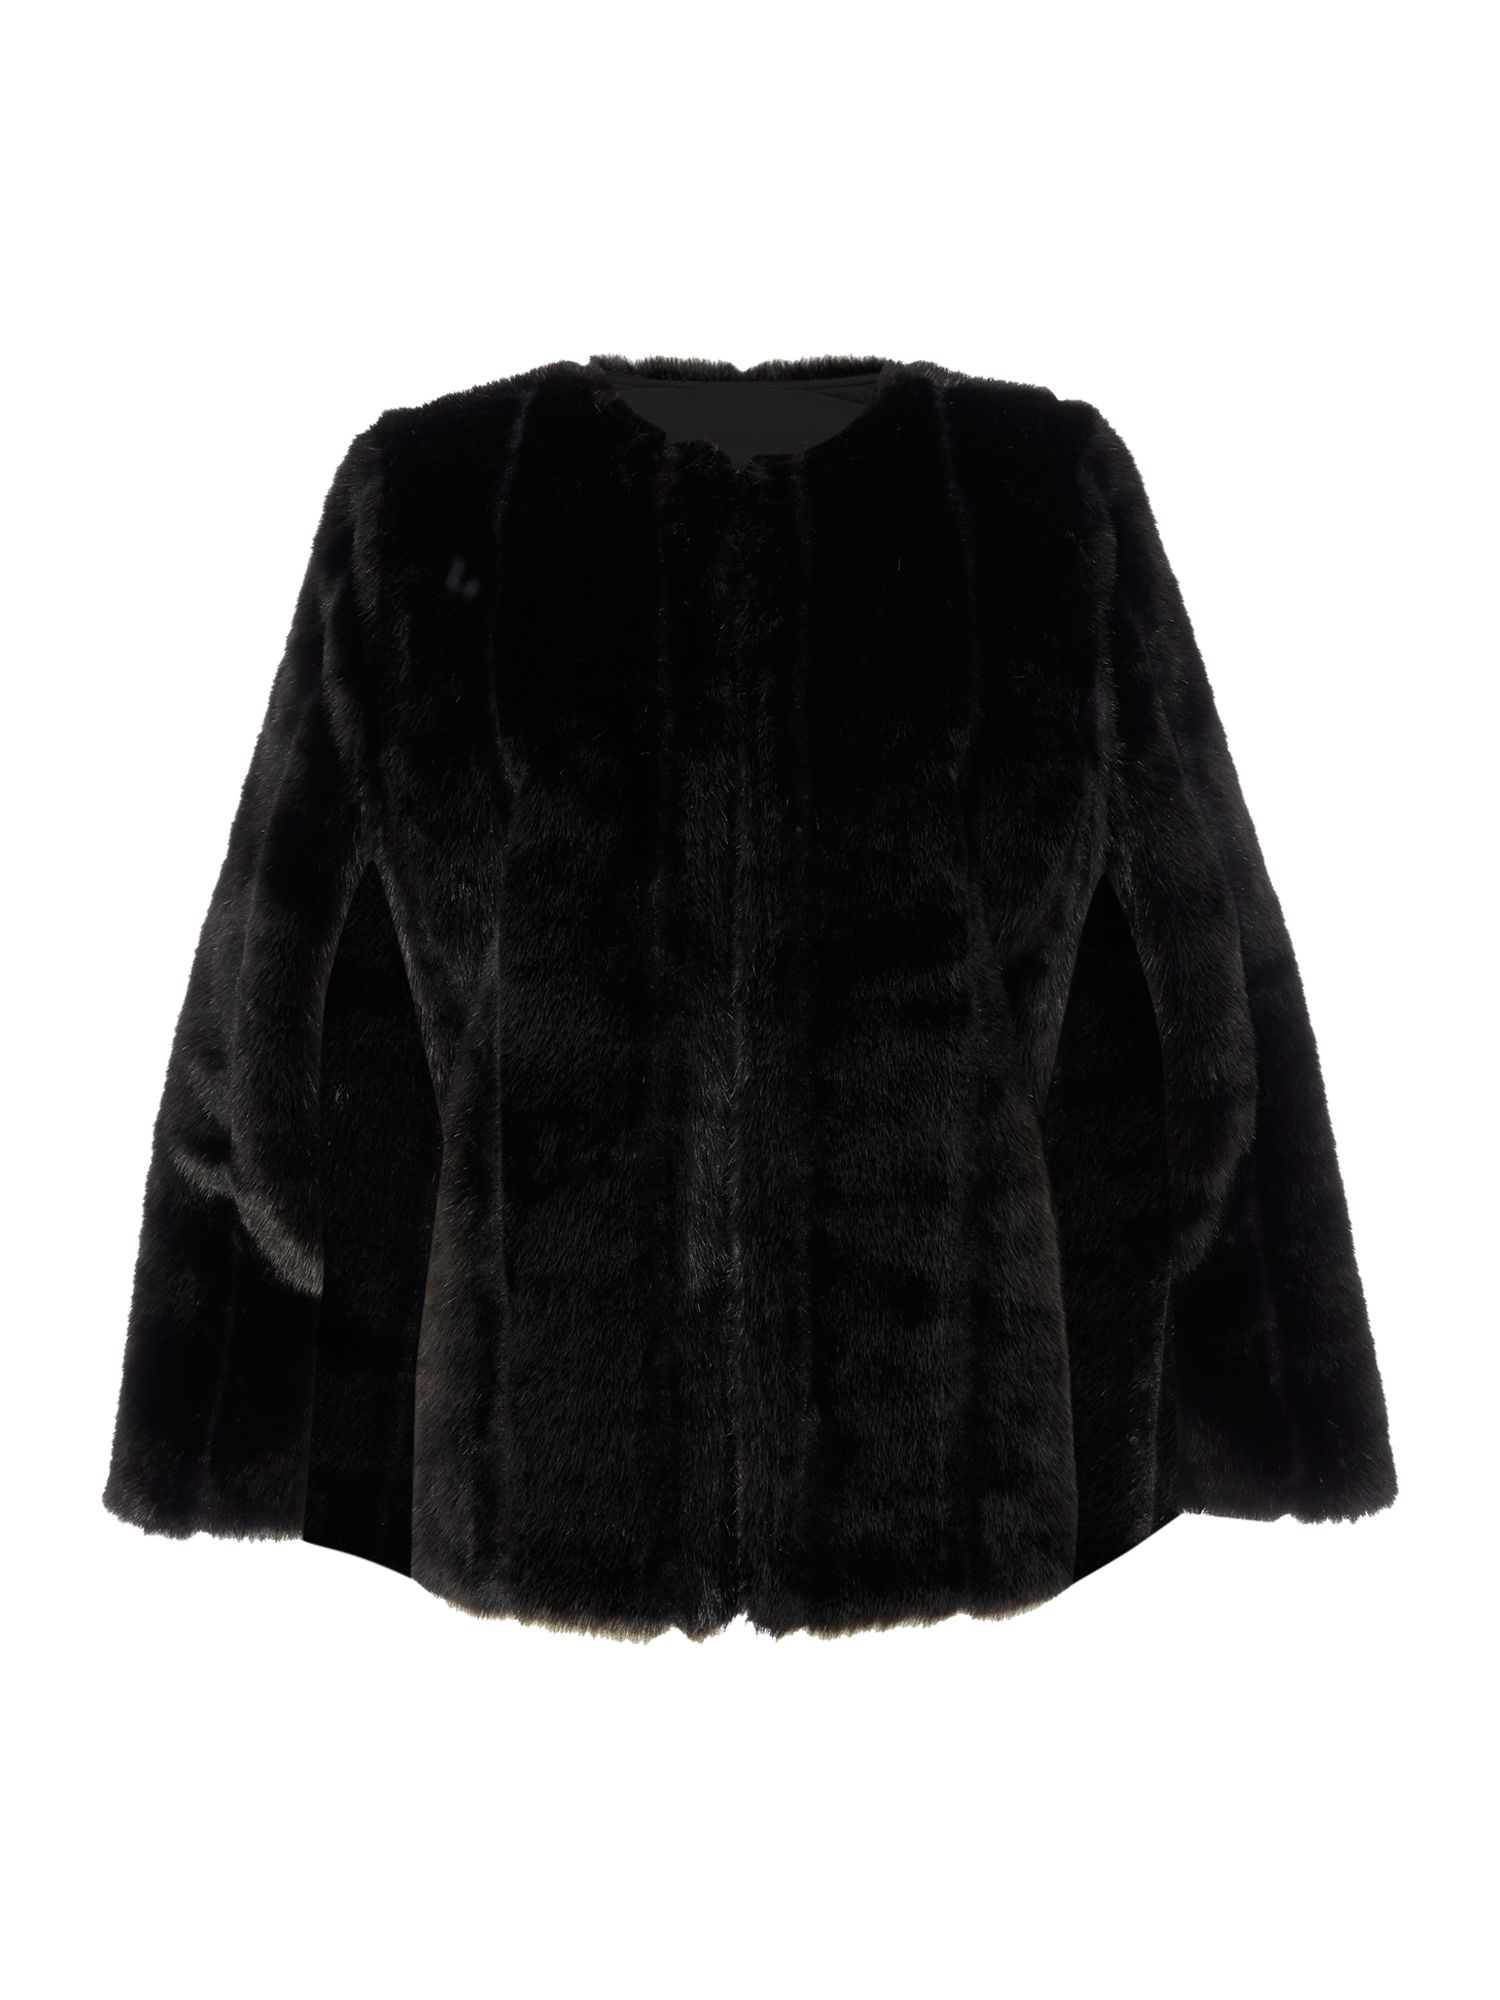 Michael Kors Faux Fur Cape, Black